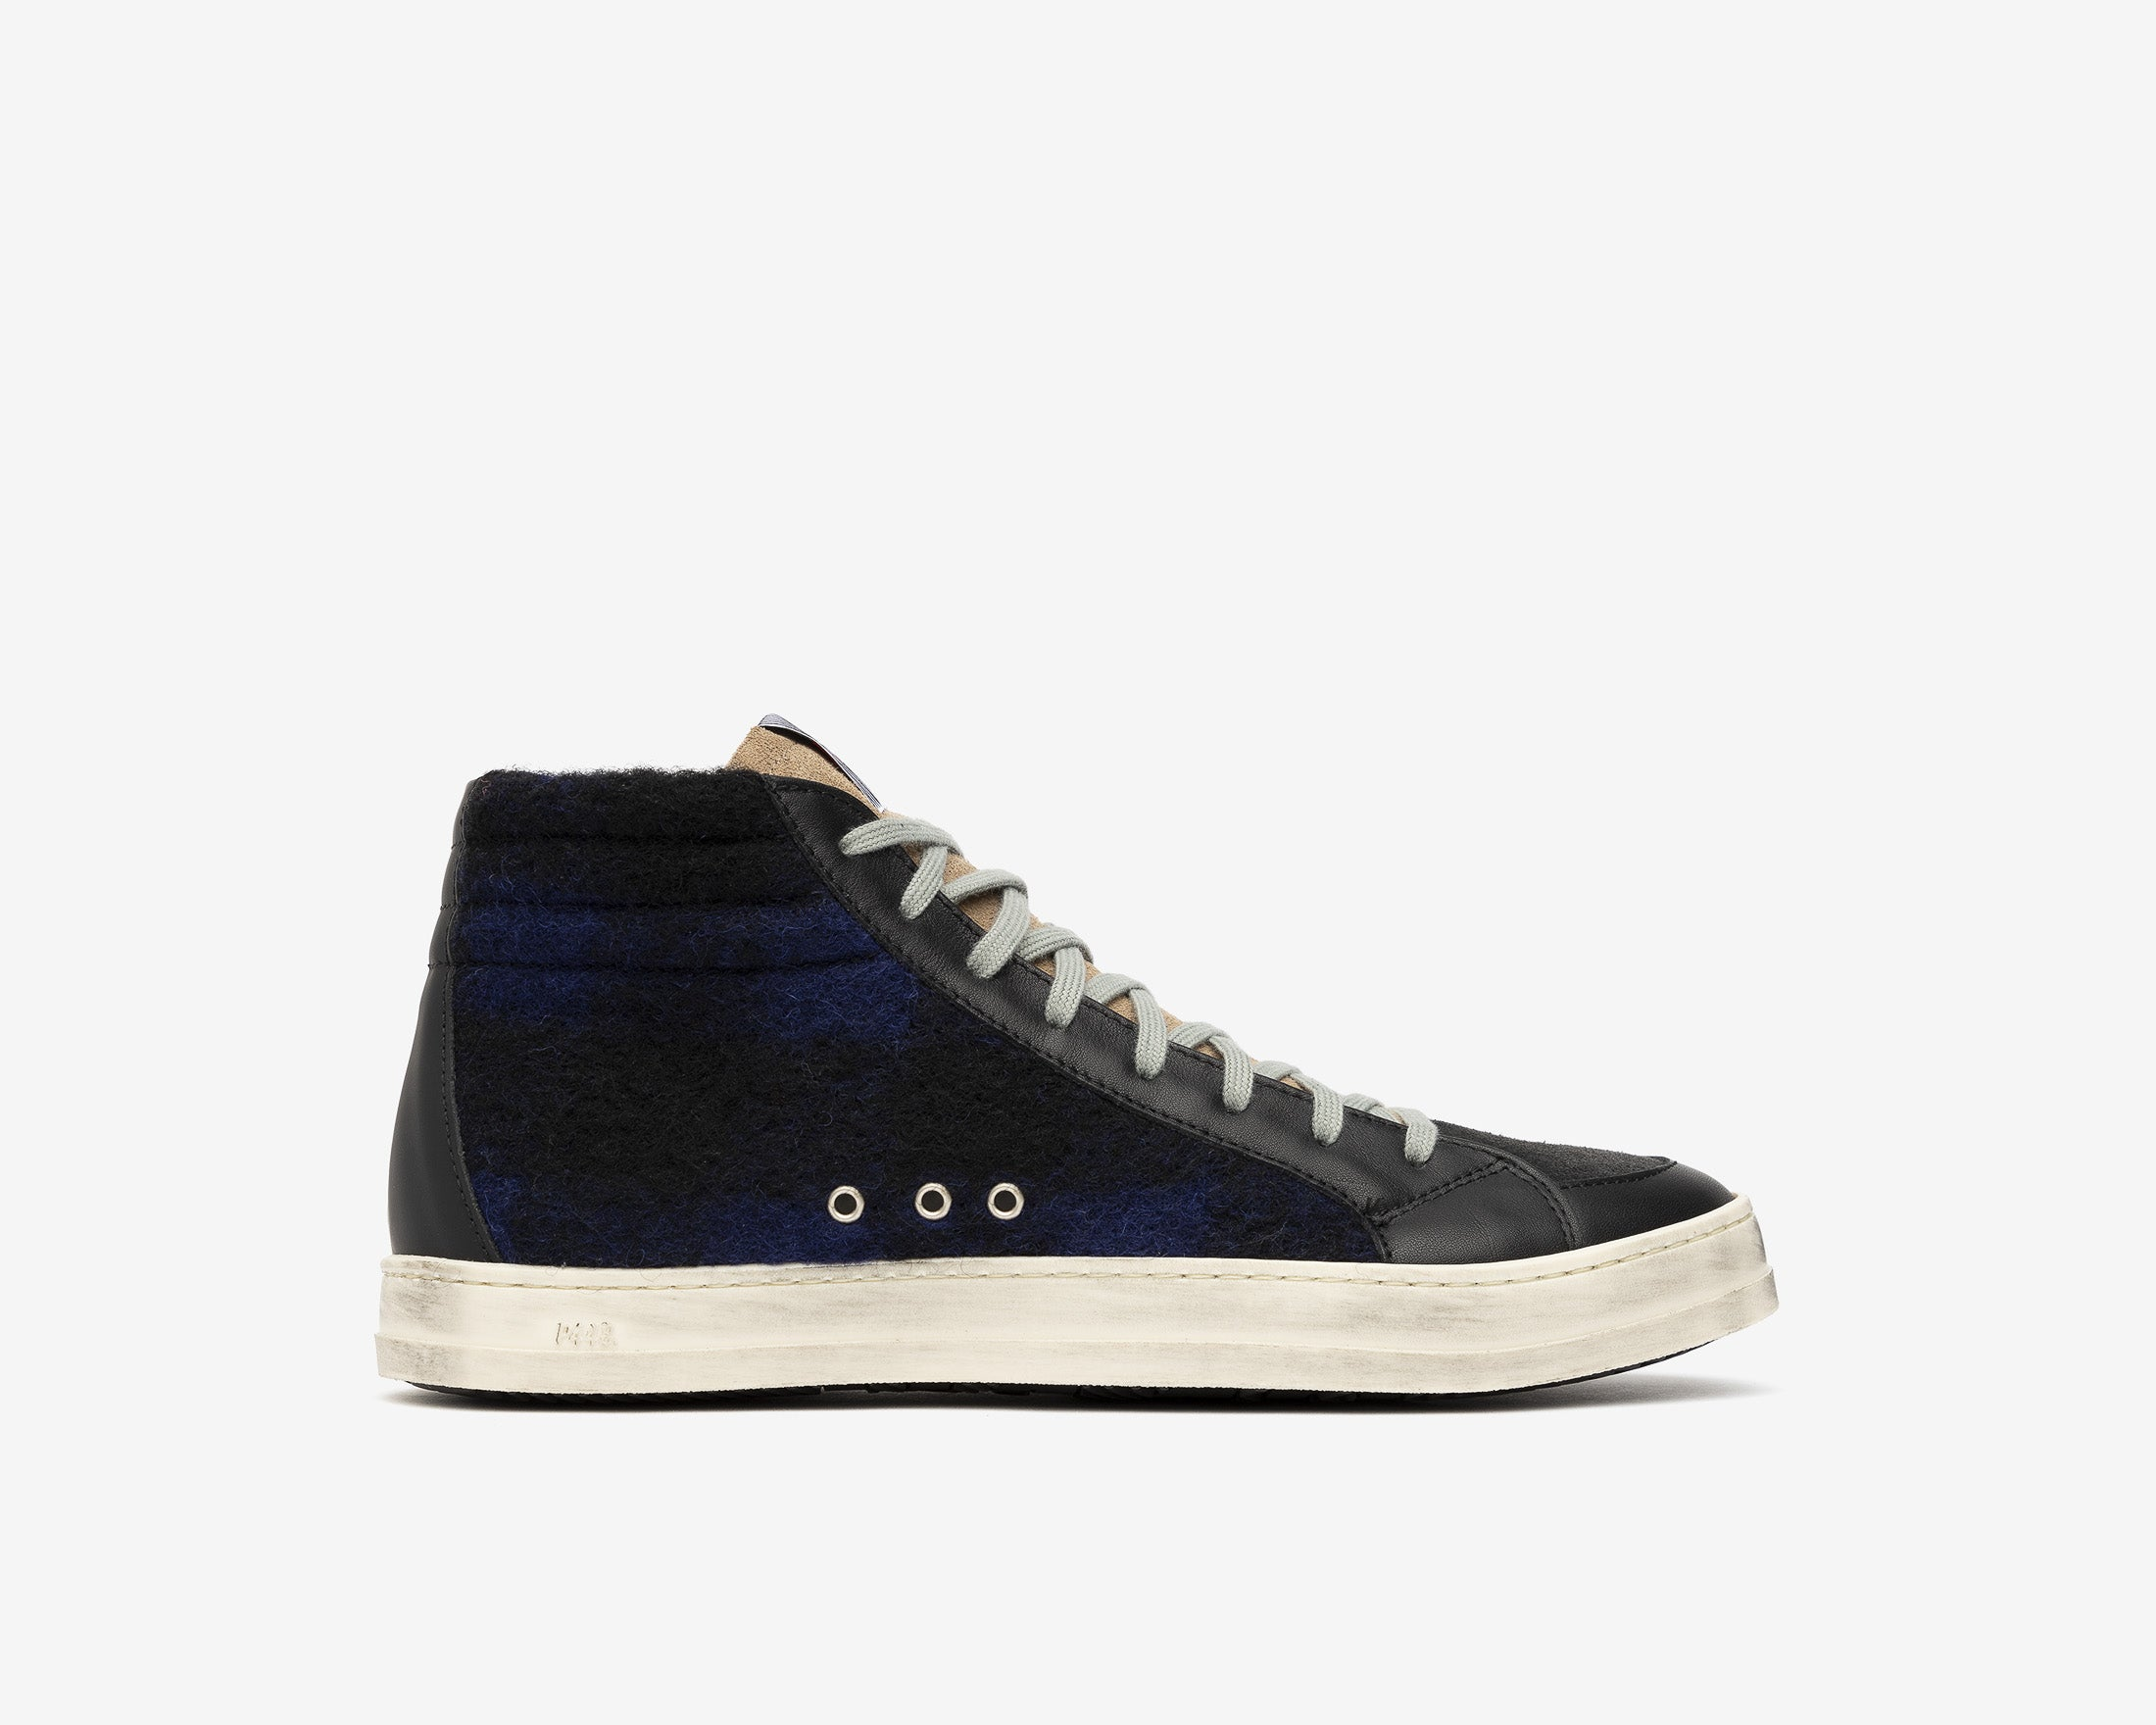 Skate High-Top Sneaker in Tartan/Royal - Profile